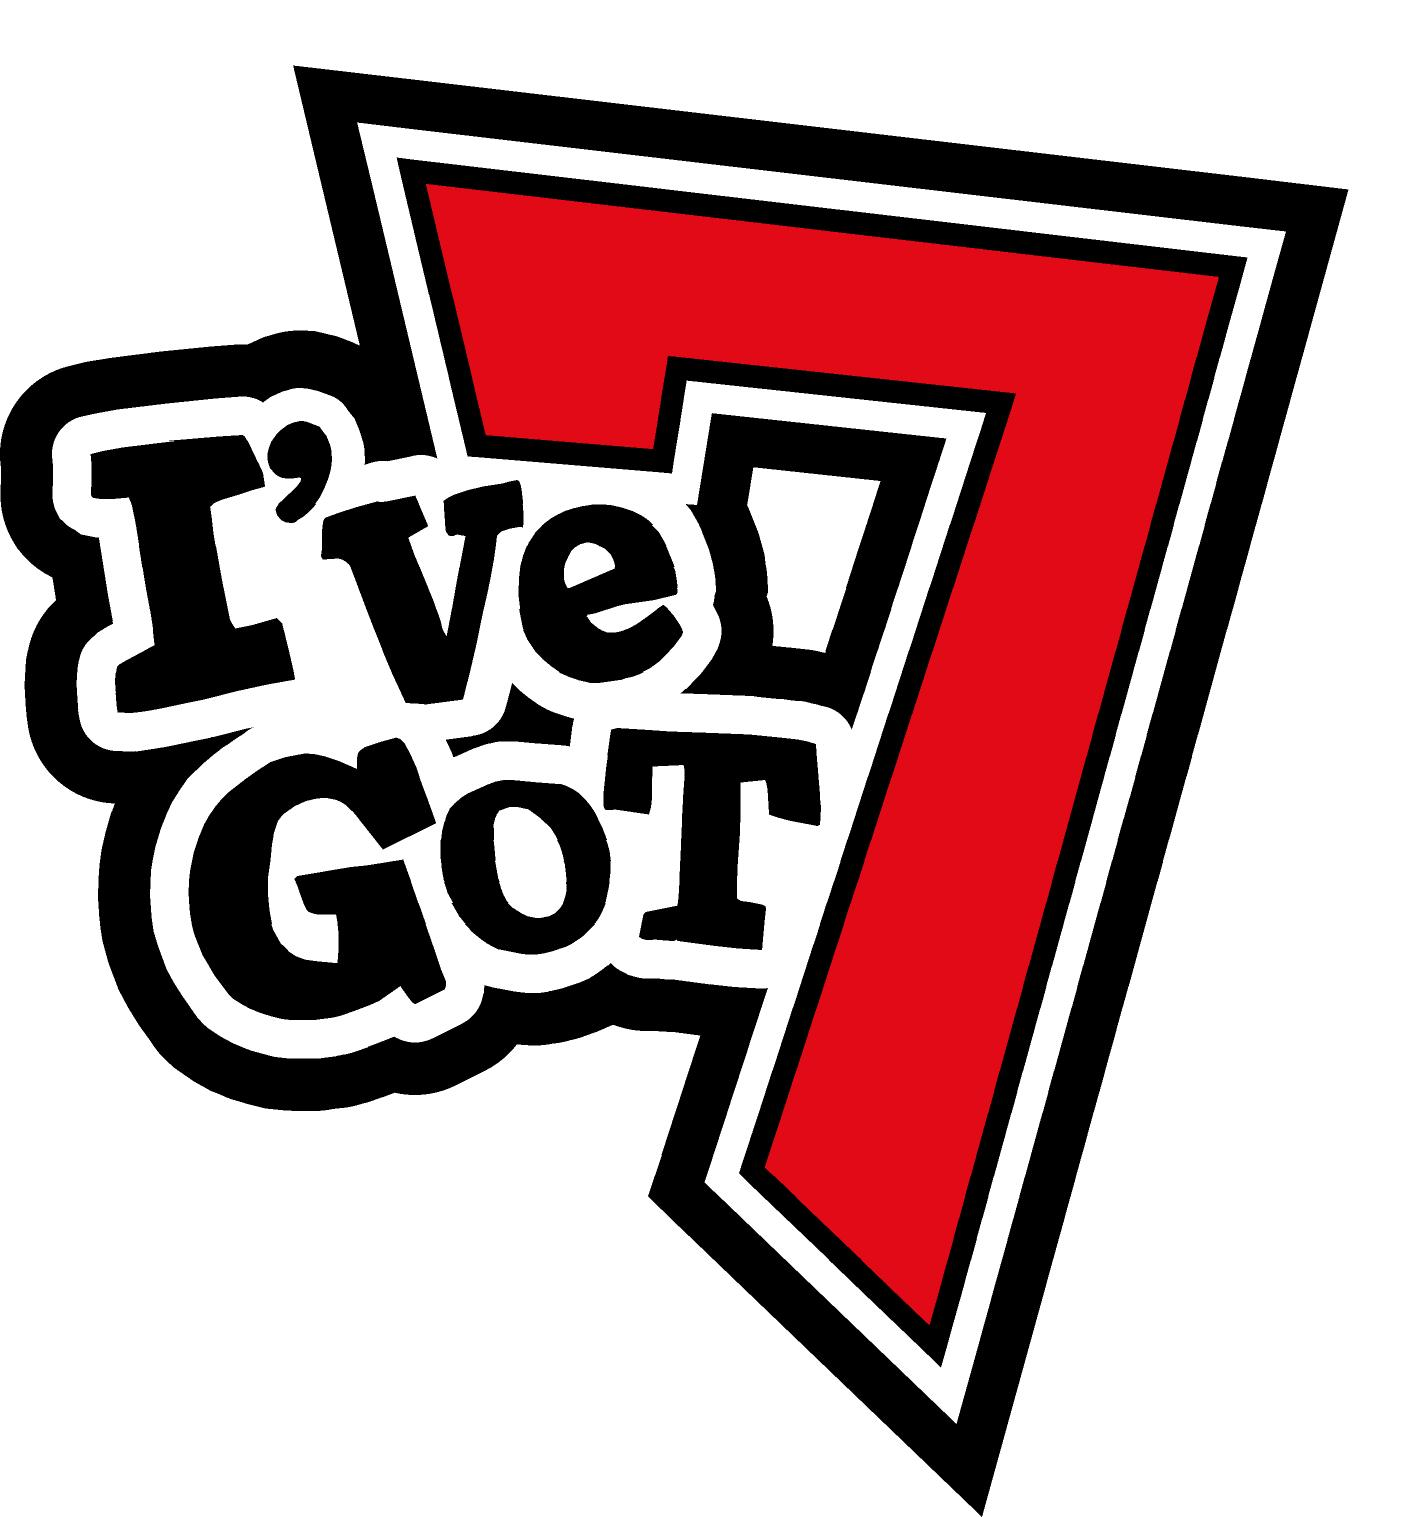 I've Got 7 Logo